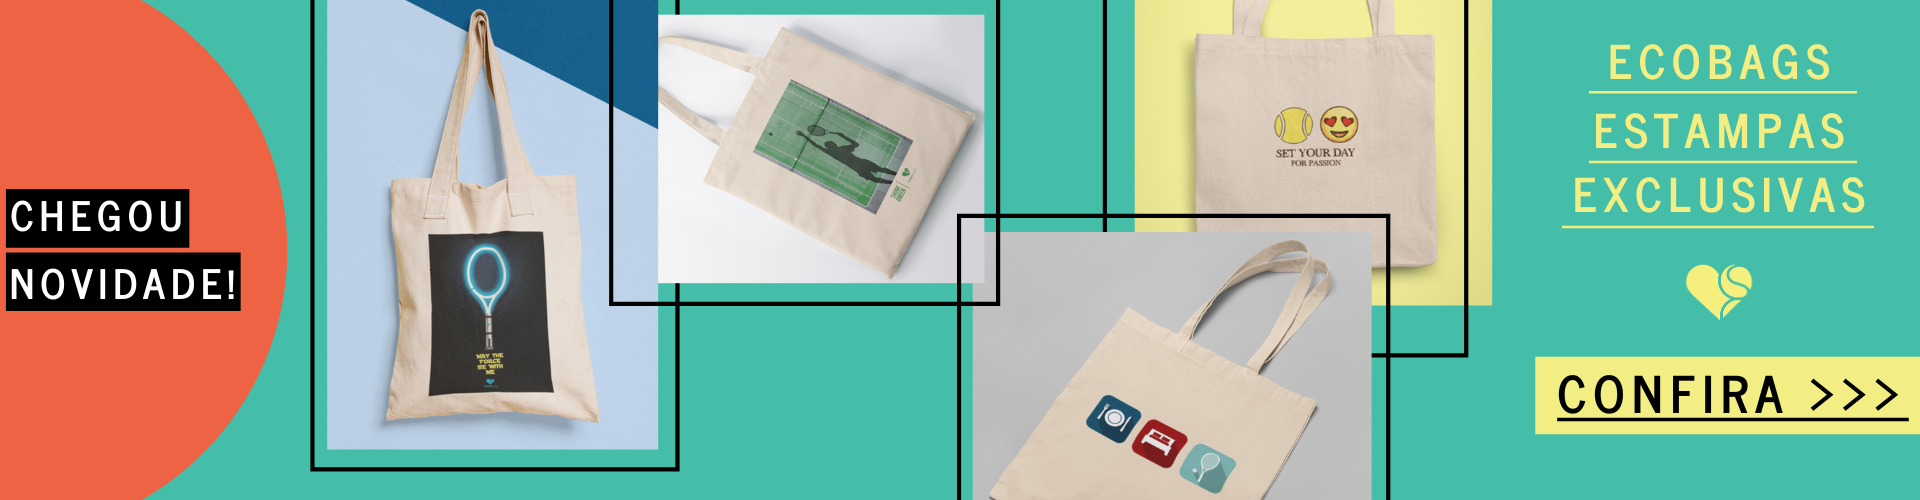 Ecobags 1